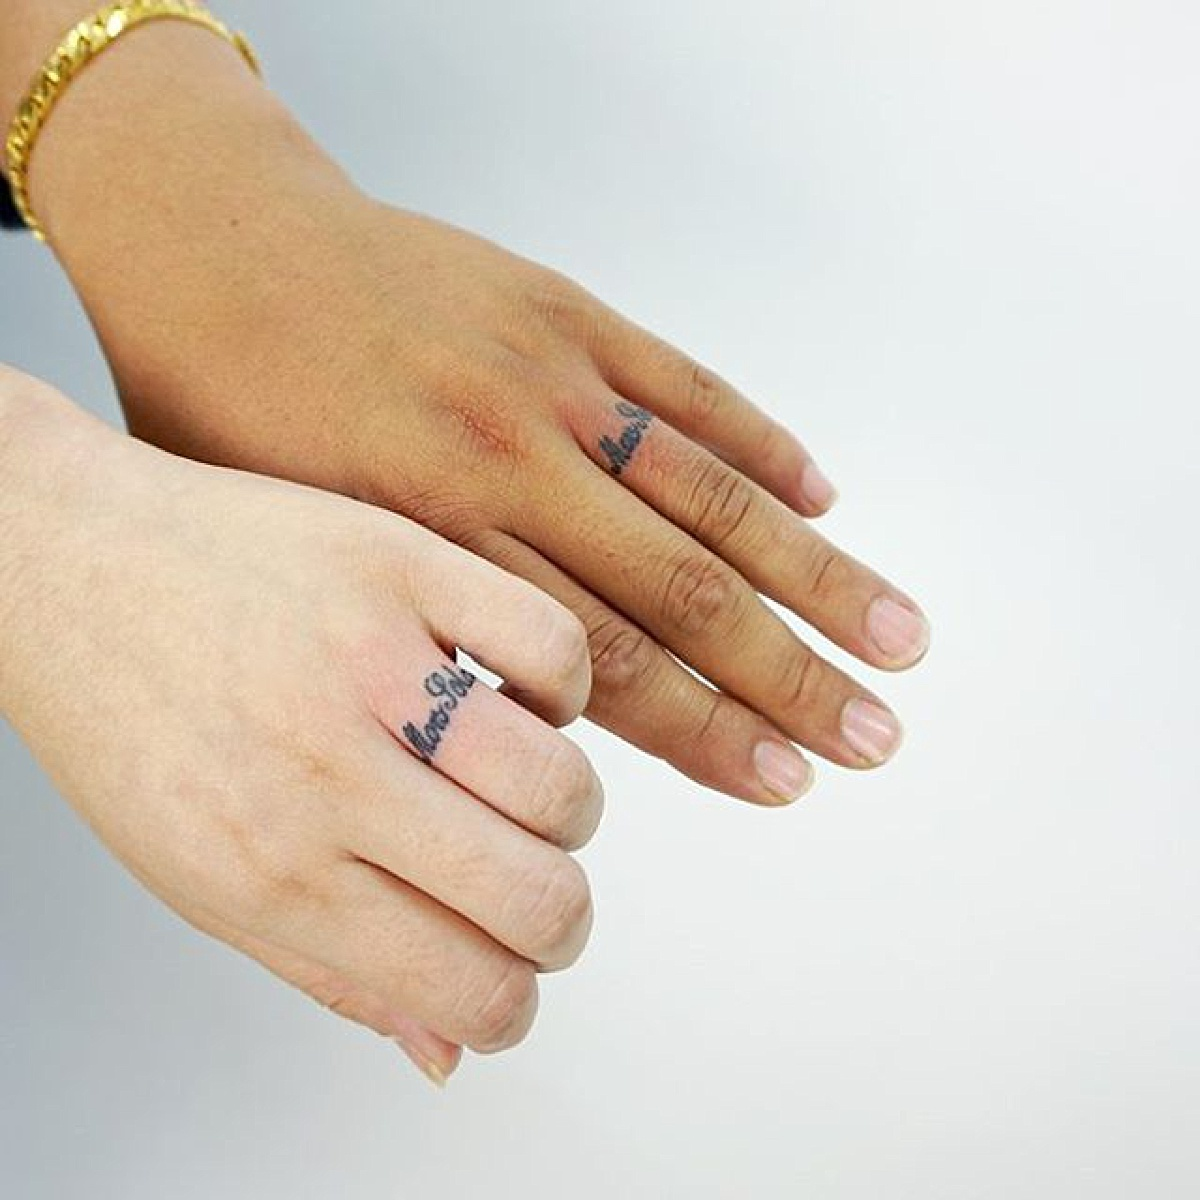 25 Wedding Ring Tattoo Ideas That Don't Suck